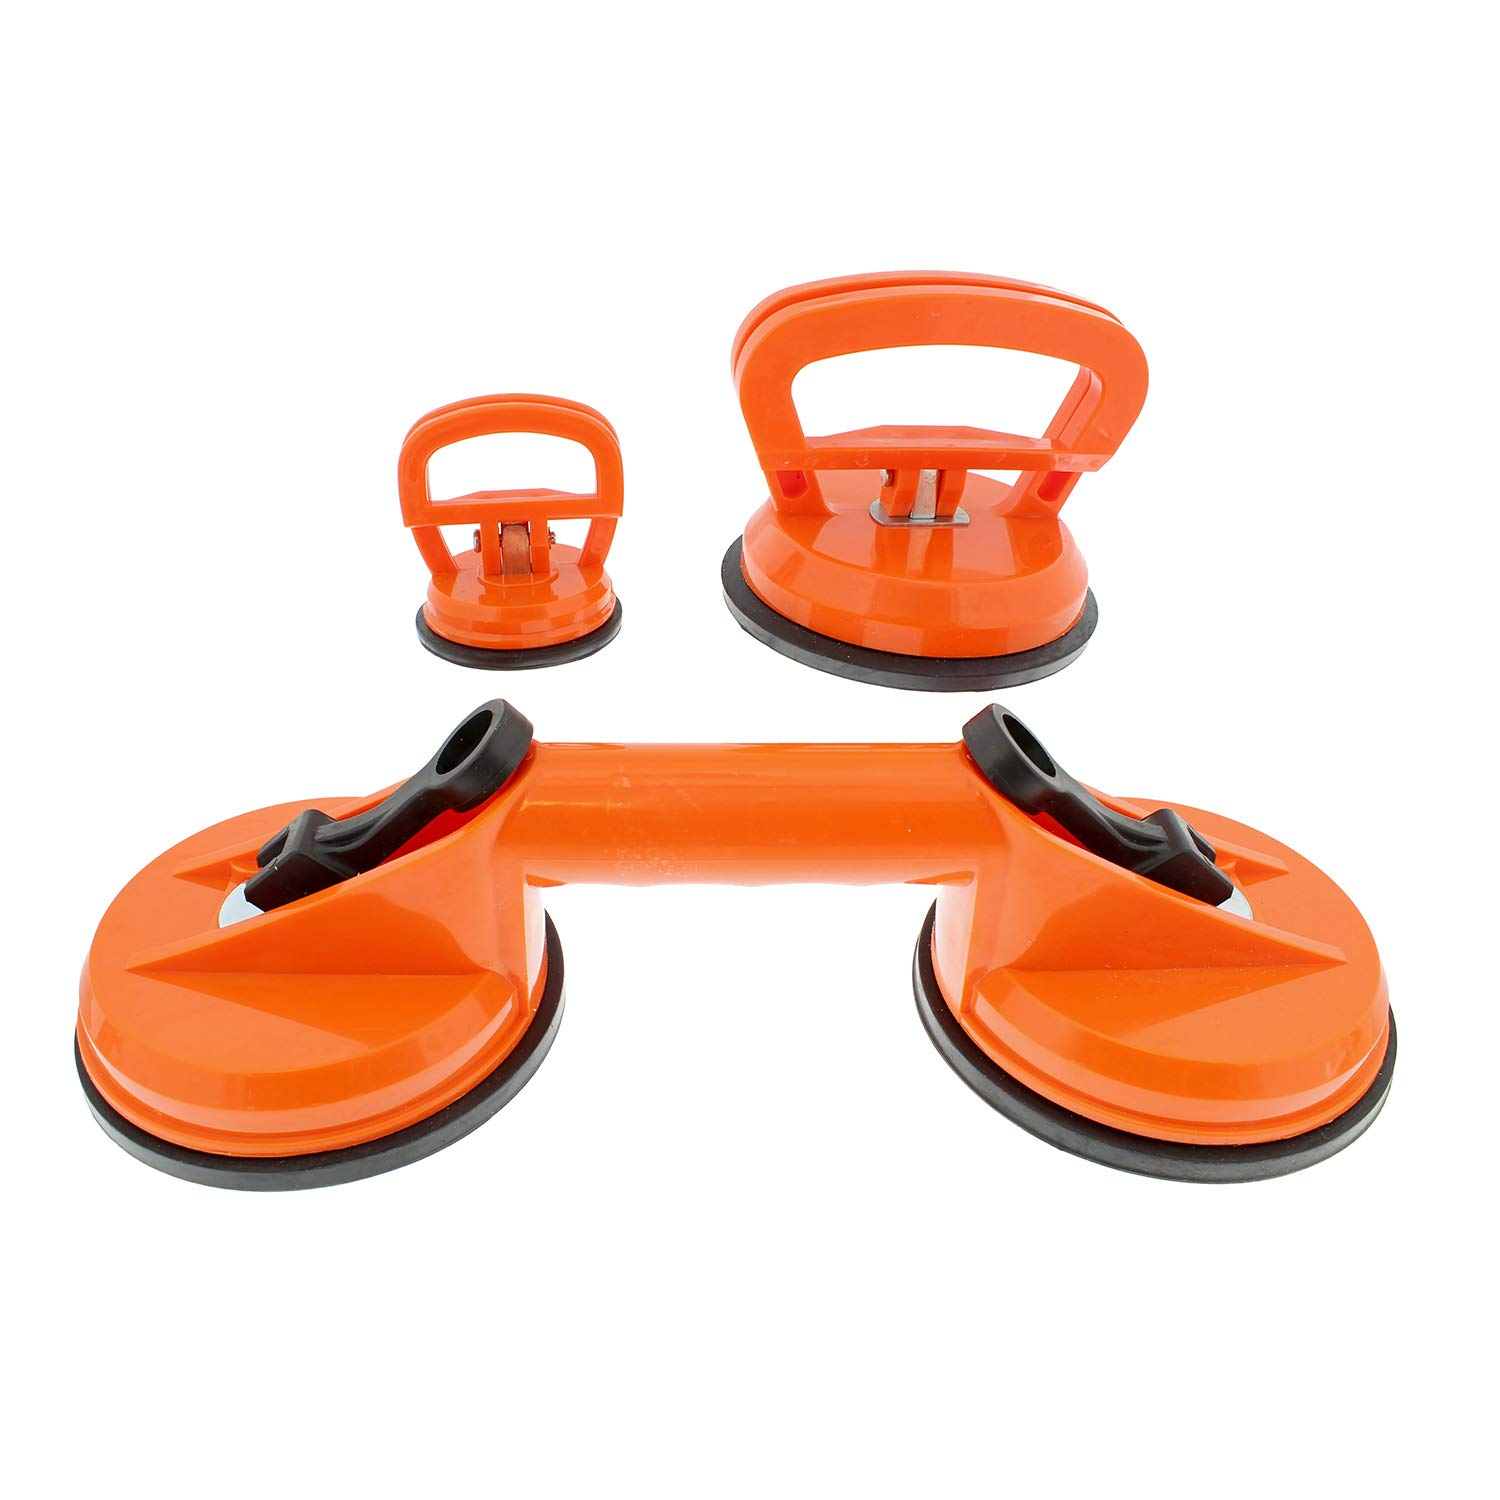 ABN Dent Remover Suction Cup Tool Kit - Set of 3 Suction Cup Auto Dent Puller Kit Bodywork Tools